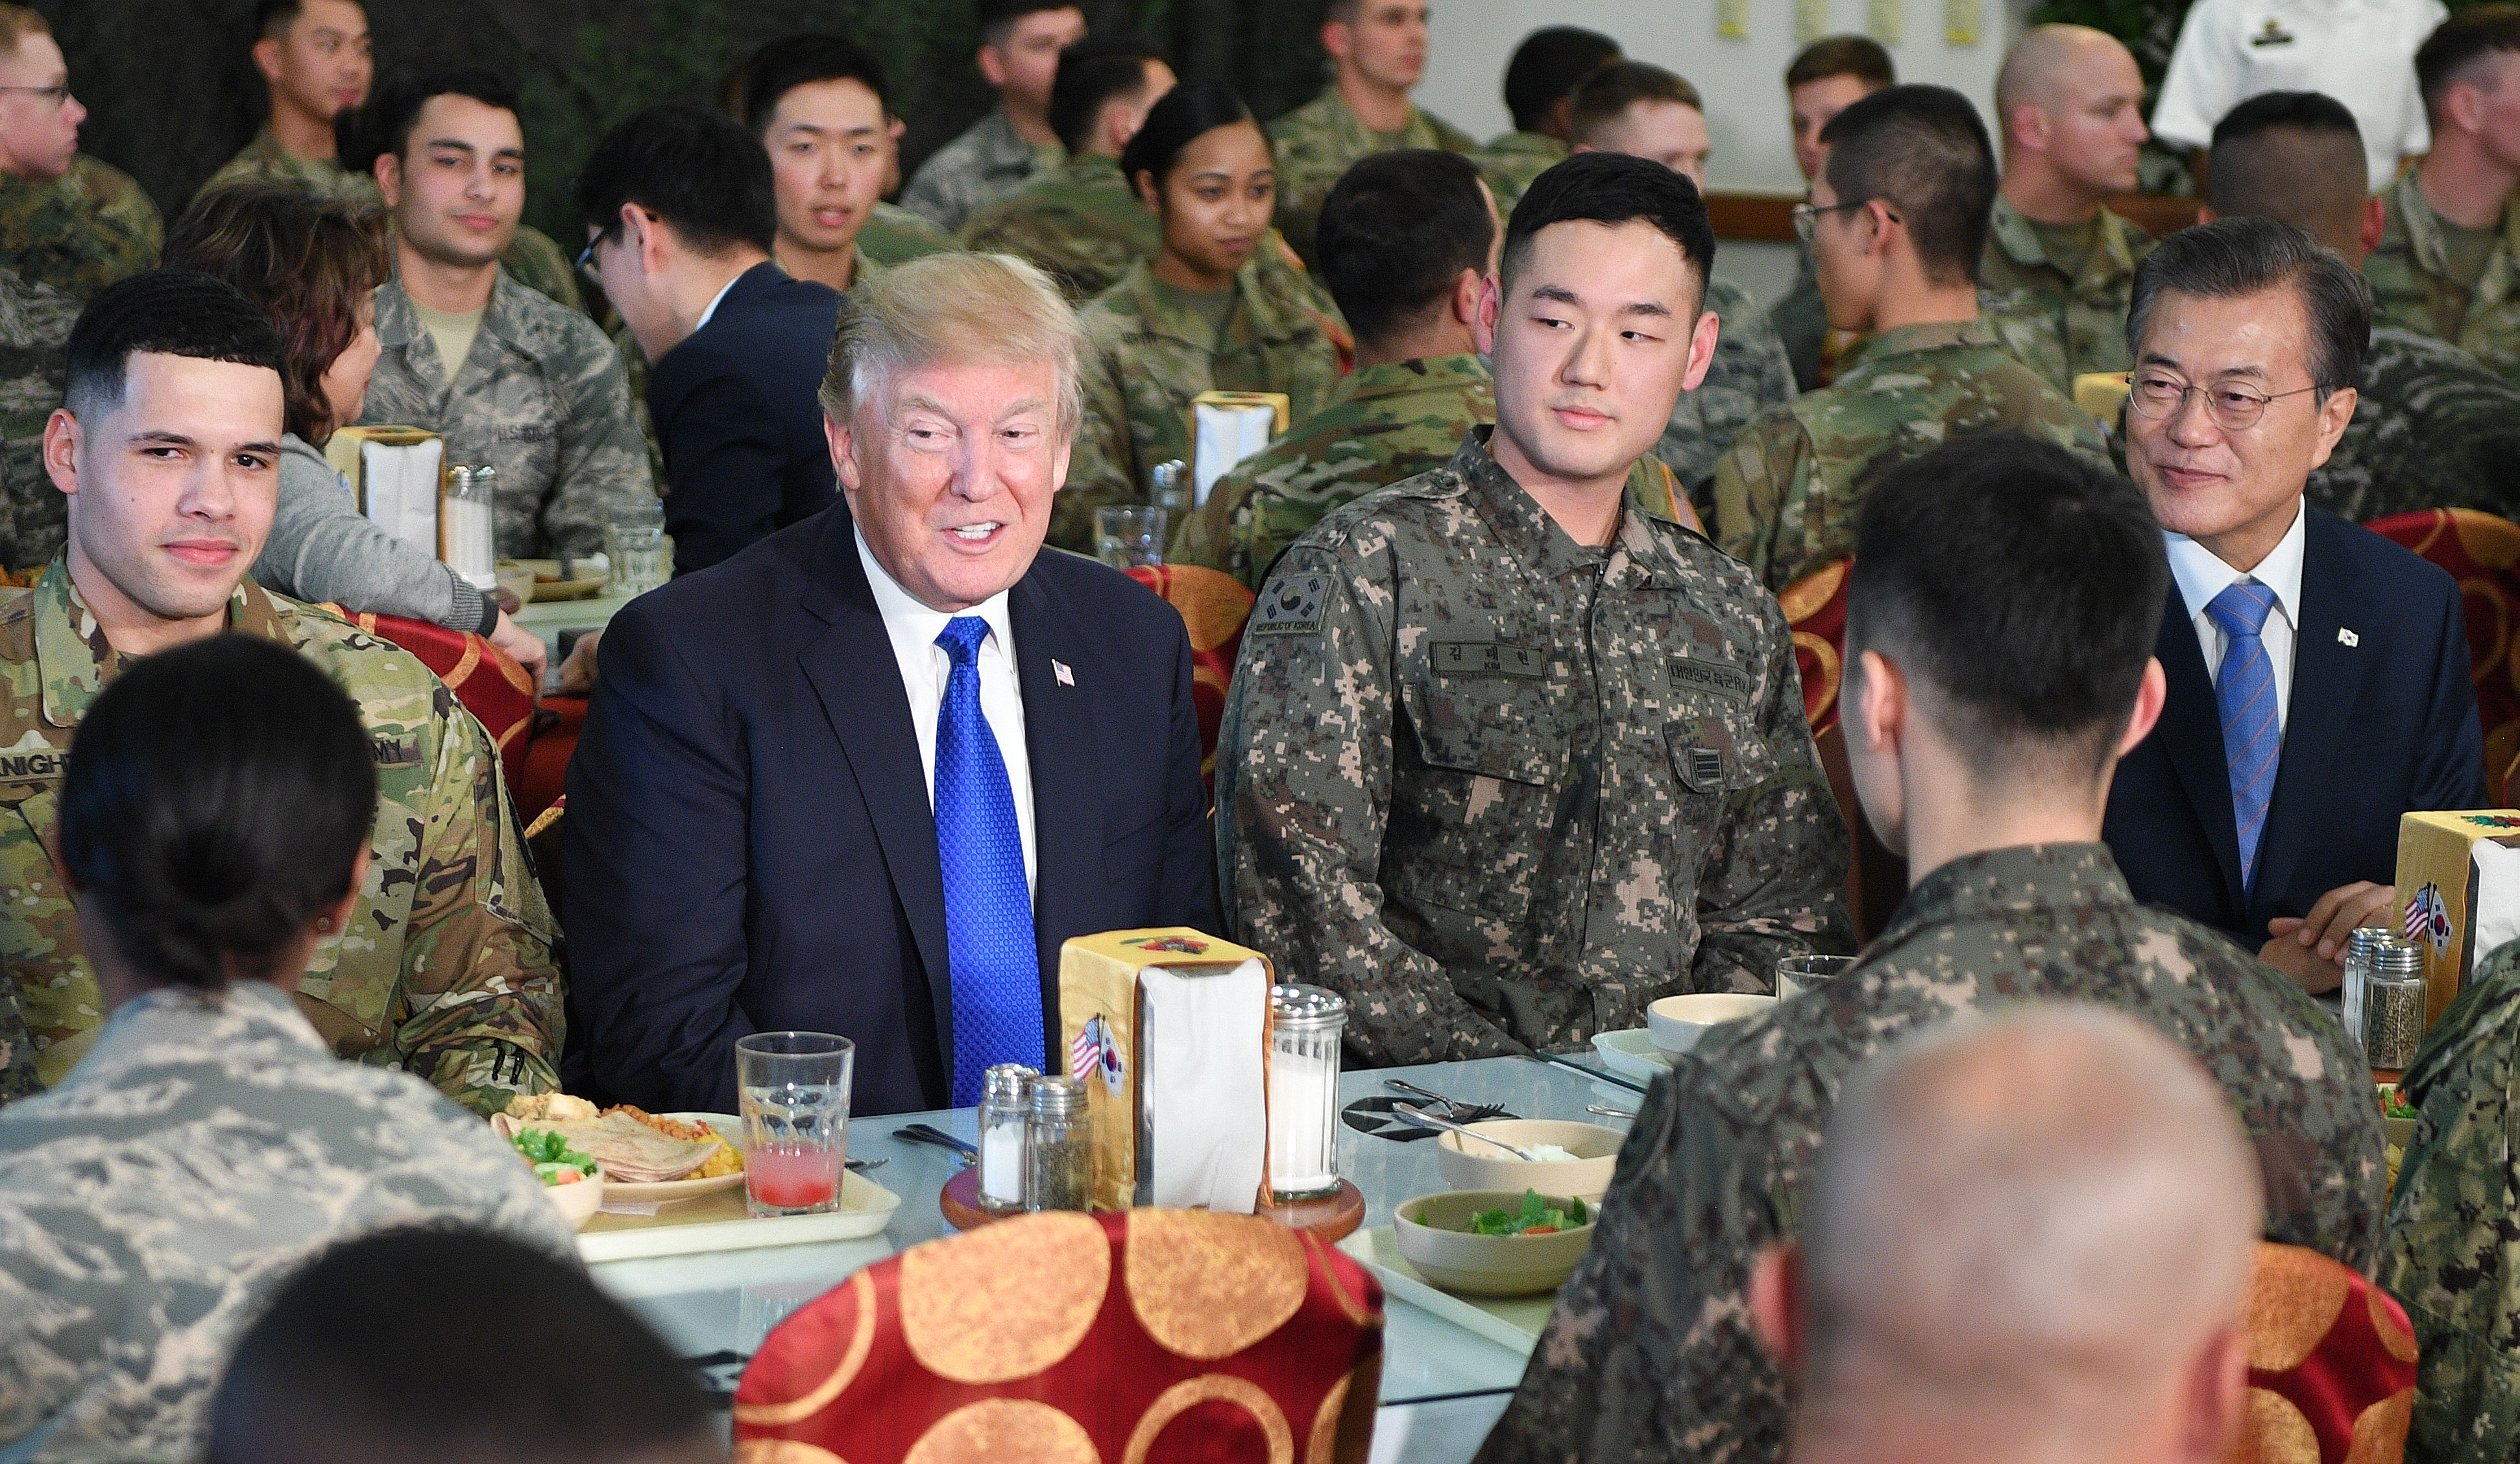 US President Donald Trump (2nd-L) talks to military personnel while South Korean President Moon Jae-In (R) looks on at Camp Humphreys in Pyeongtaek, south of Seoul on November 7, 2017. Trump's marathon Asia tour moves to South Korea, another key ally in the struggle with nuclear-armed North Korea, but one with deep reservations about the US president's strategy for dealing with the crisis. JIM WATSON/AFP/Getty Images